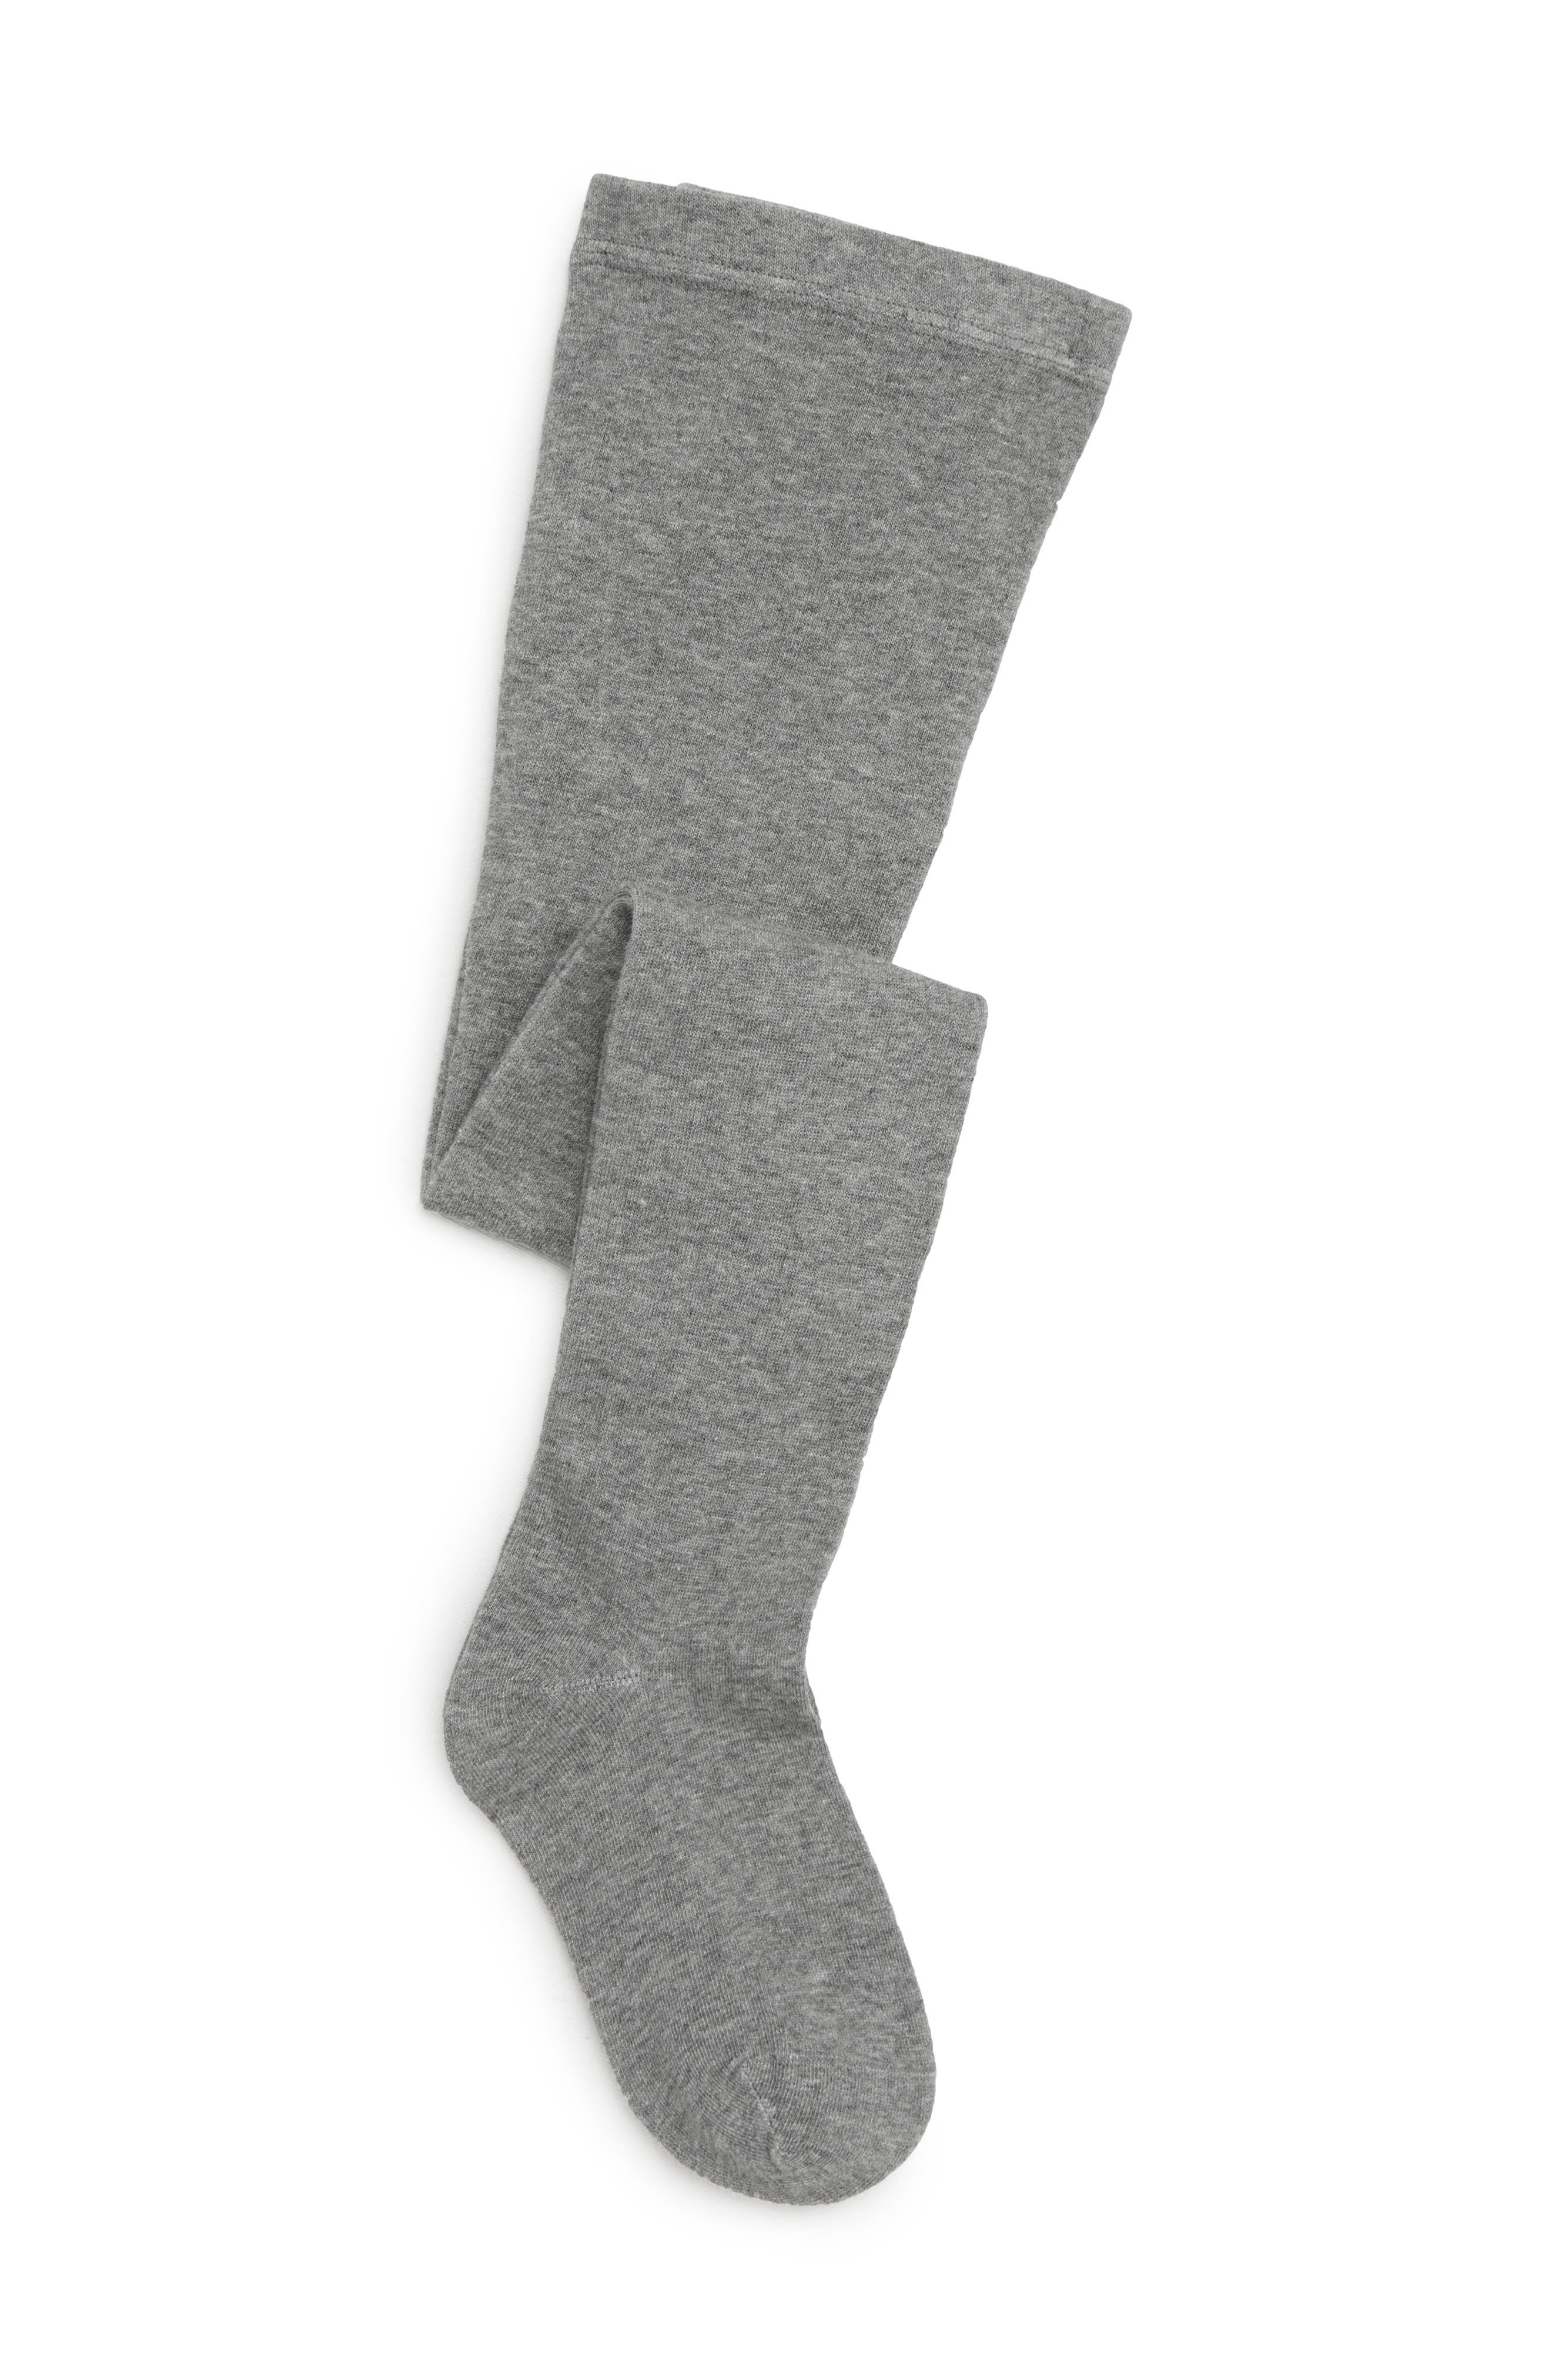 TUCKER + TATE, Nordstrom Sweater Tights, Main thumbnail 1, color, HEATHER GREY